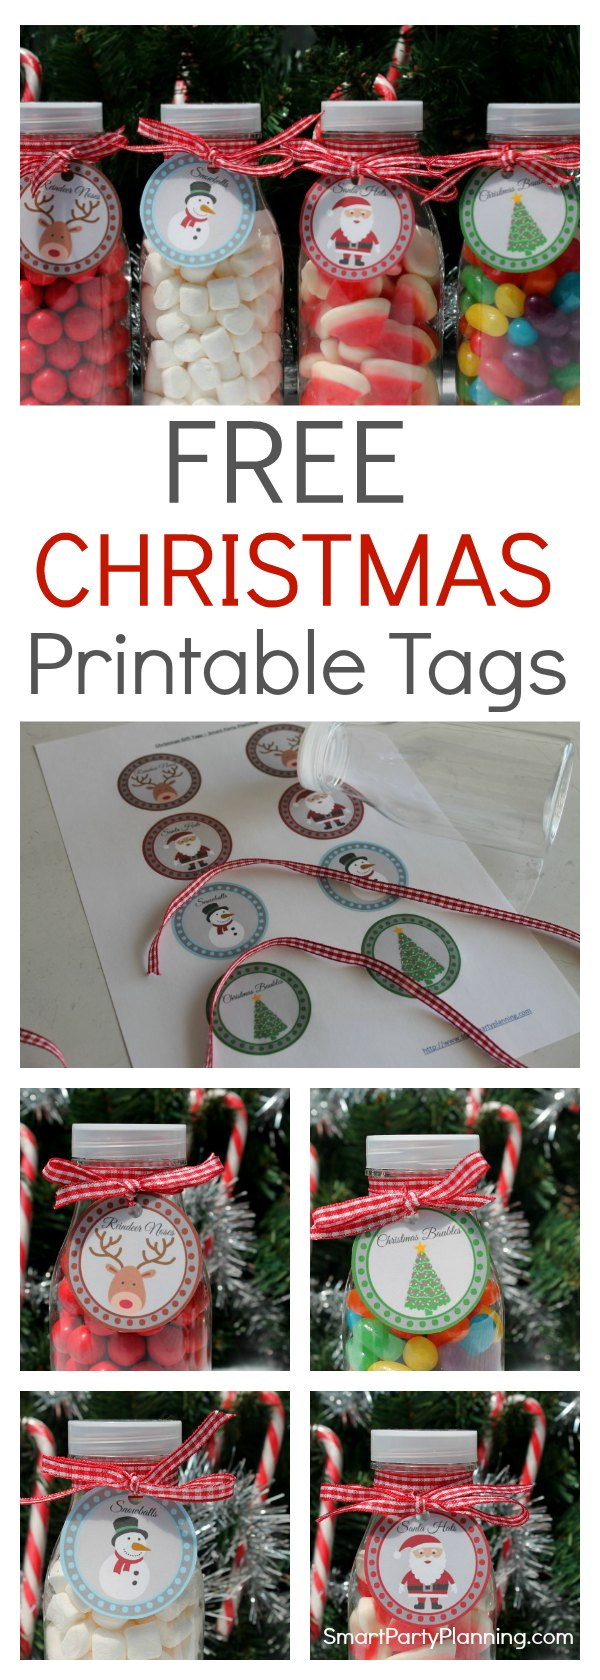 Download a set of 4 free printable Christmas tags, perfect for adding the Christmas spirit to gifts. Use them as either gift tags or cupcake toppers to spread the Christmas cheer.